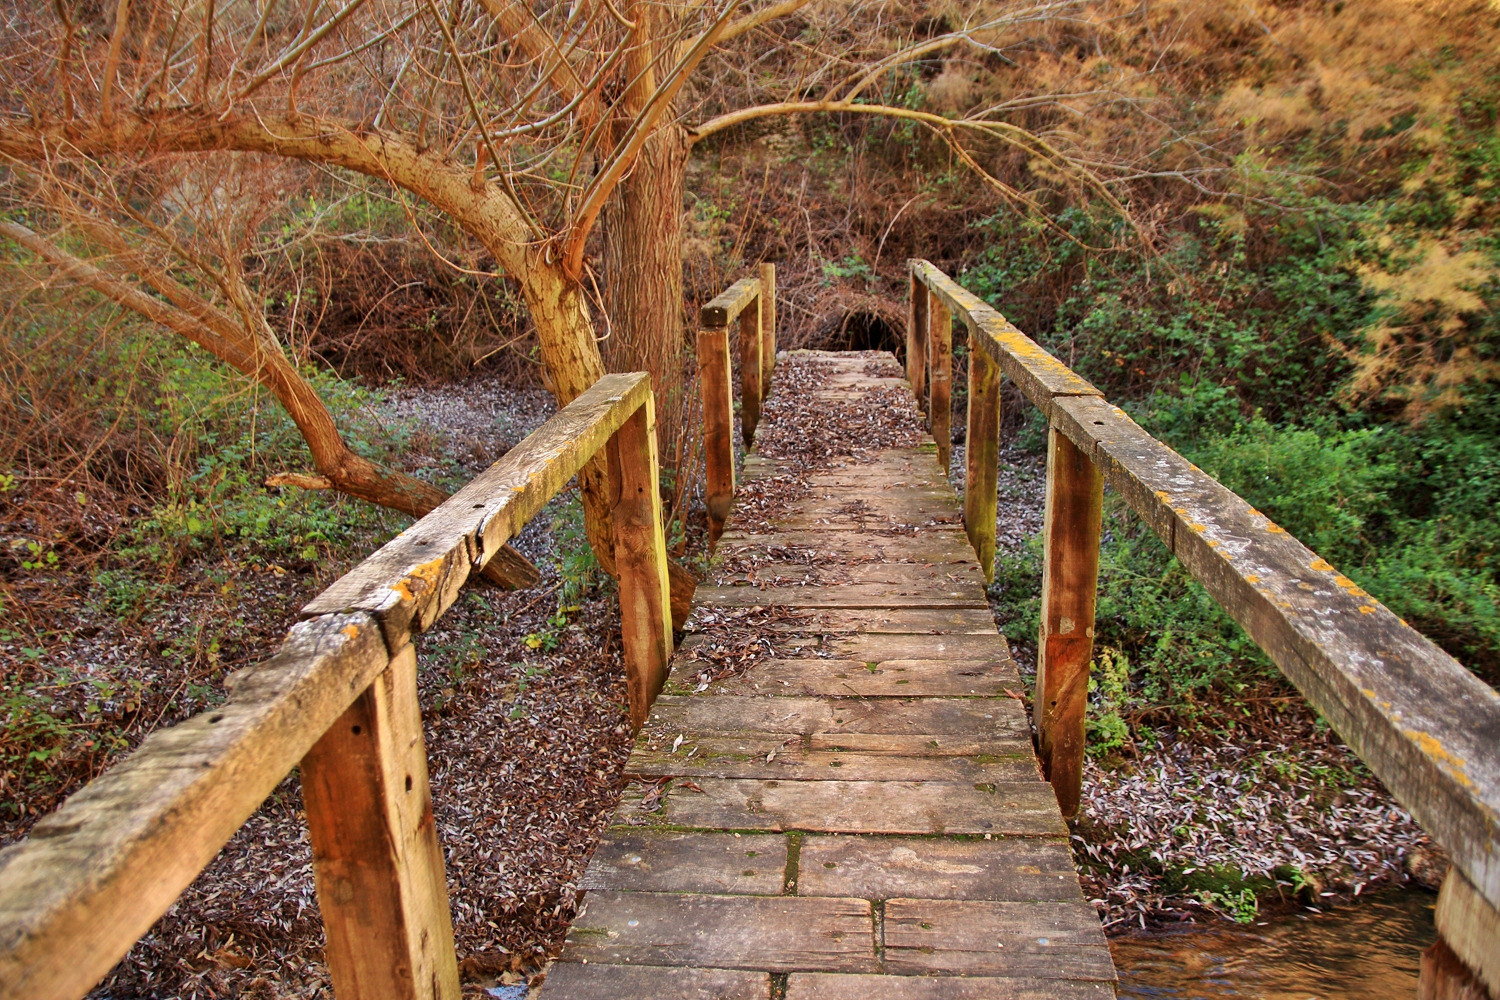 """The Wooden Bridge"" - Rio Cacin, Cacin, Granada - B05106"